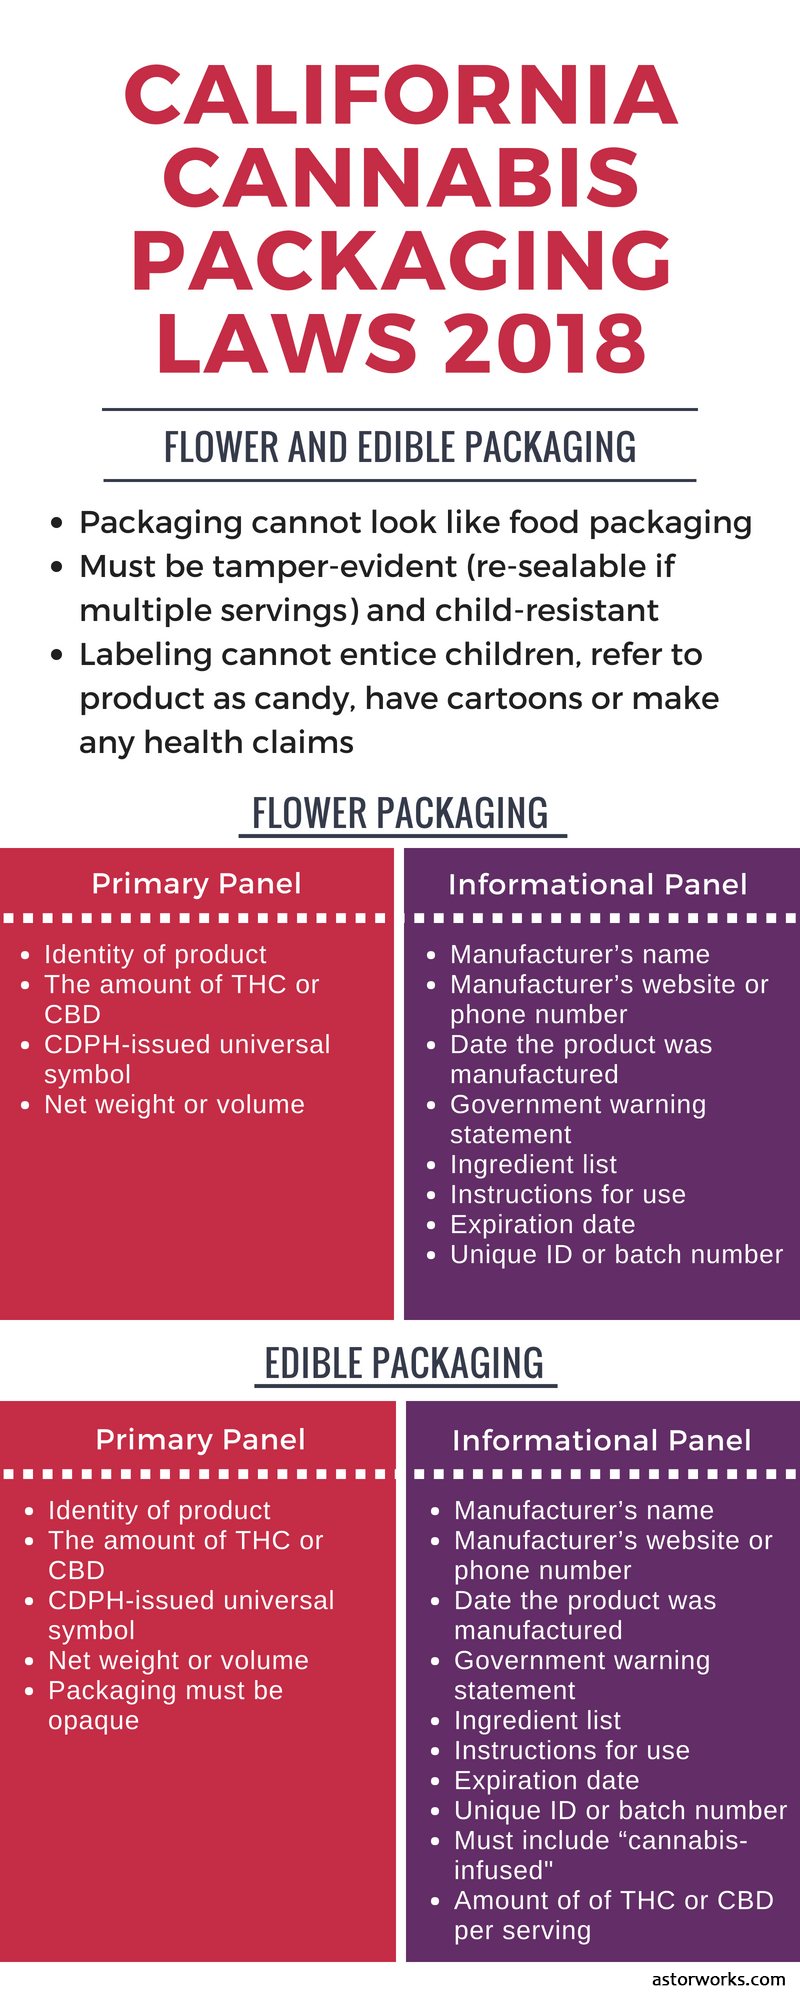 California cannabis packaging laws 2018